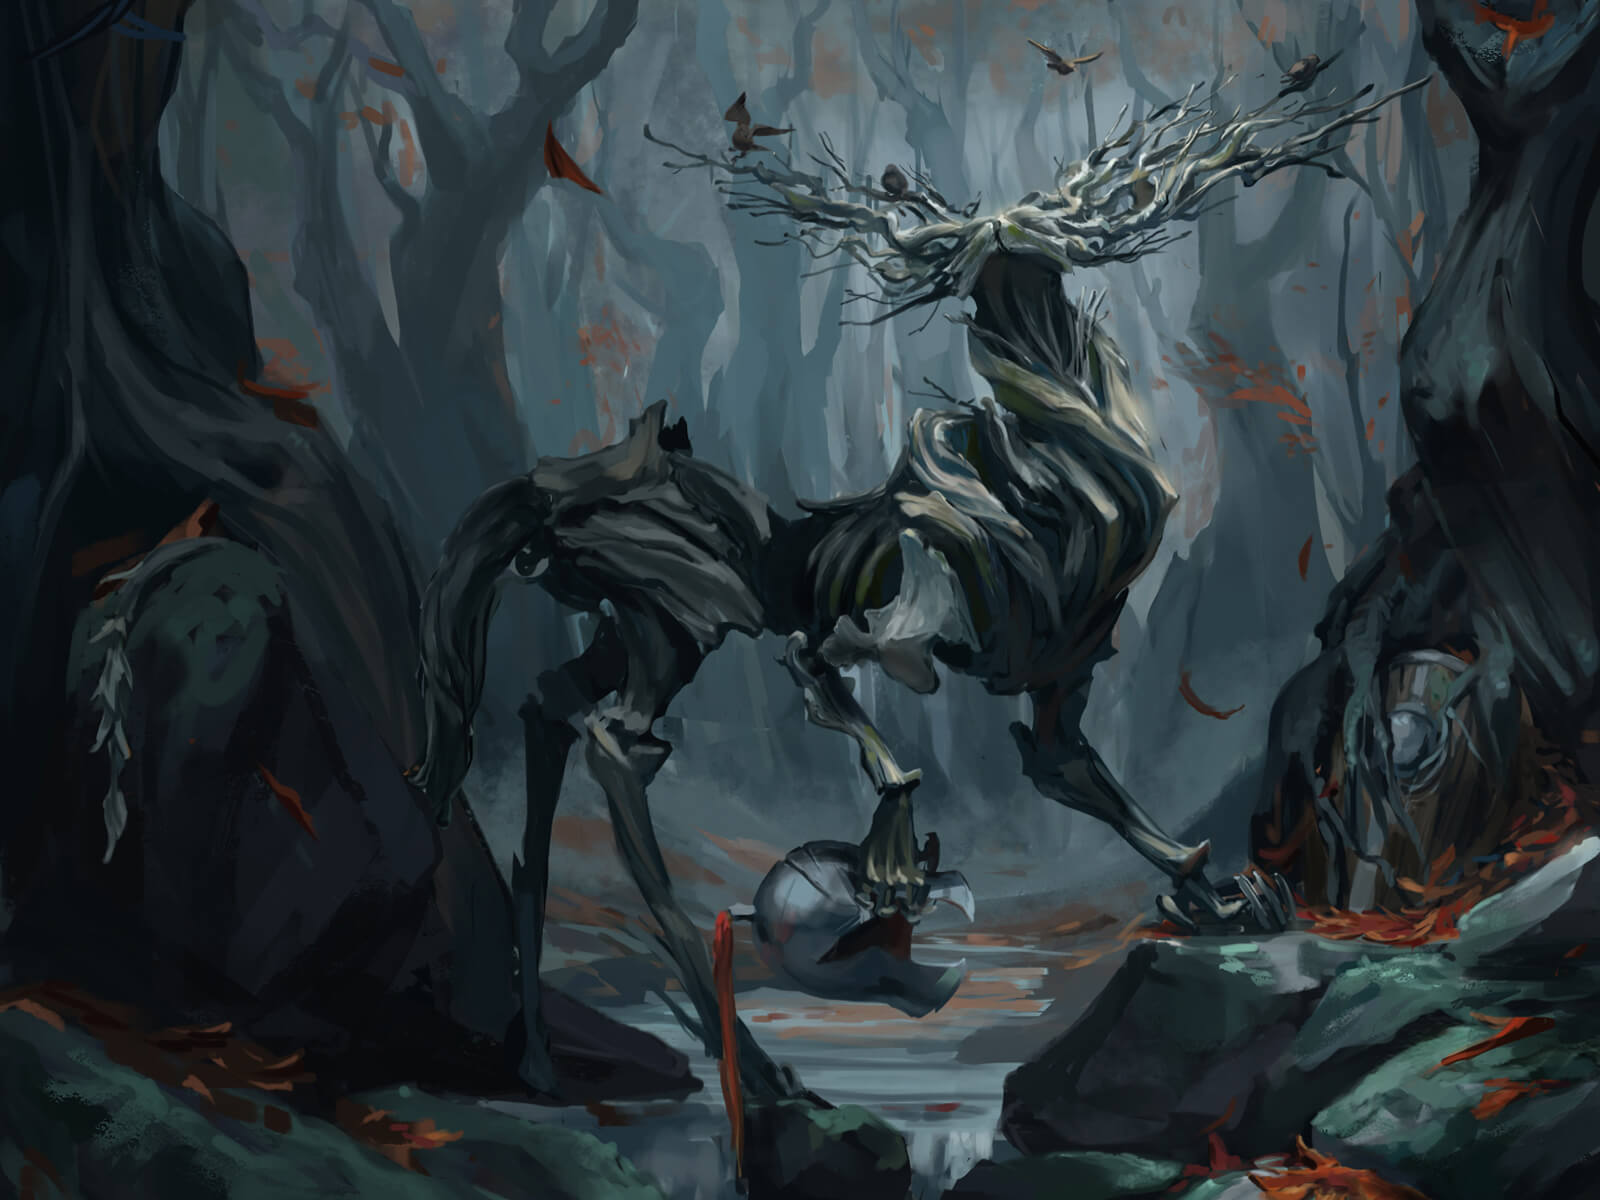 A wooden creature stands in a dark forest